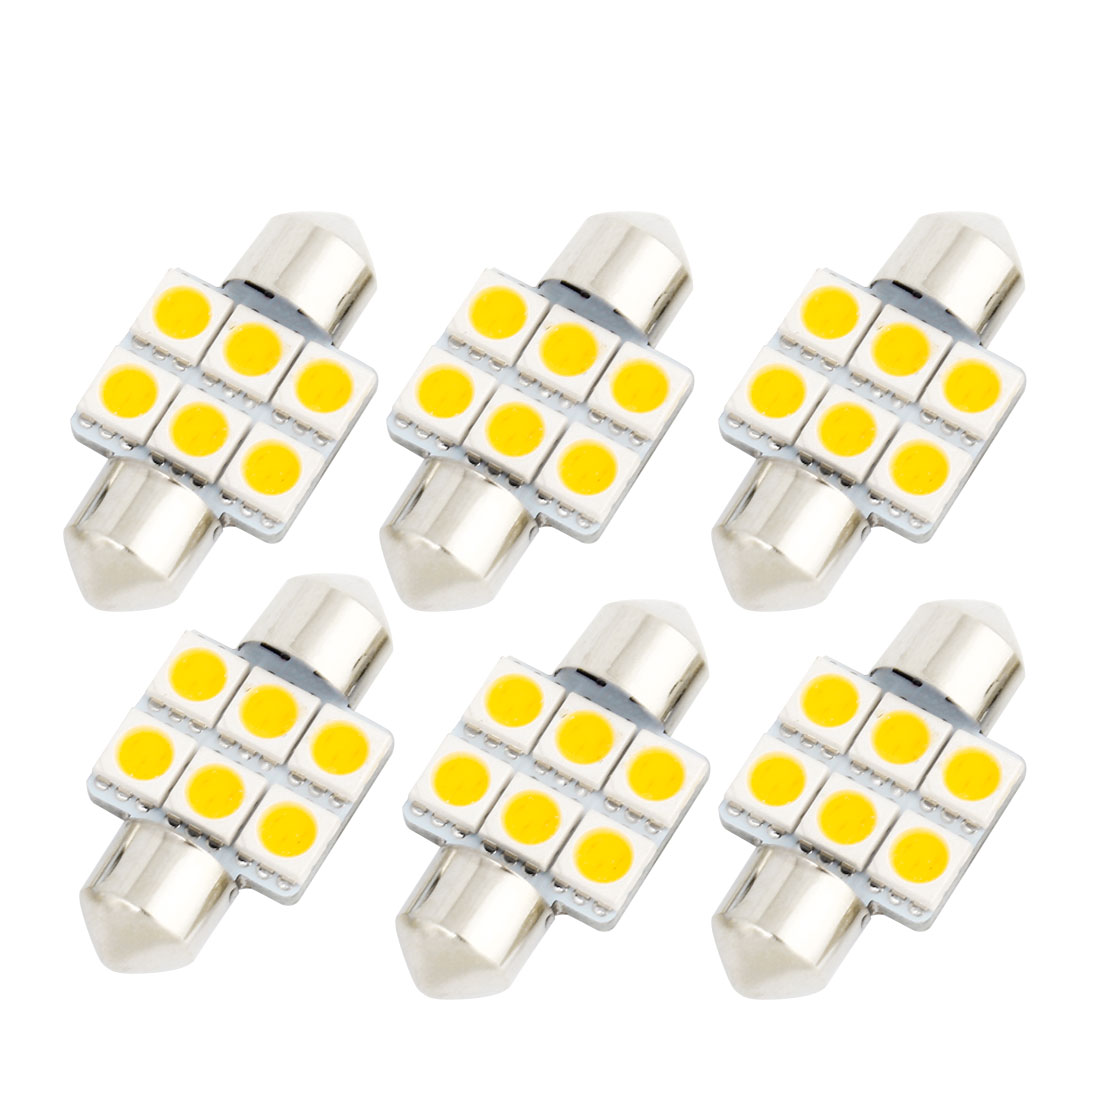 6Pcs 31mm 5050 SMD 6 LED Warm White Festoon Dome Map Reading Light DE3175 DE3022 DE3021 Internal